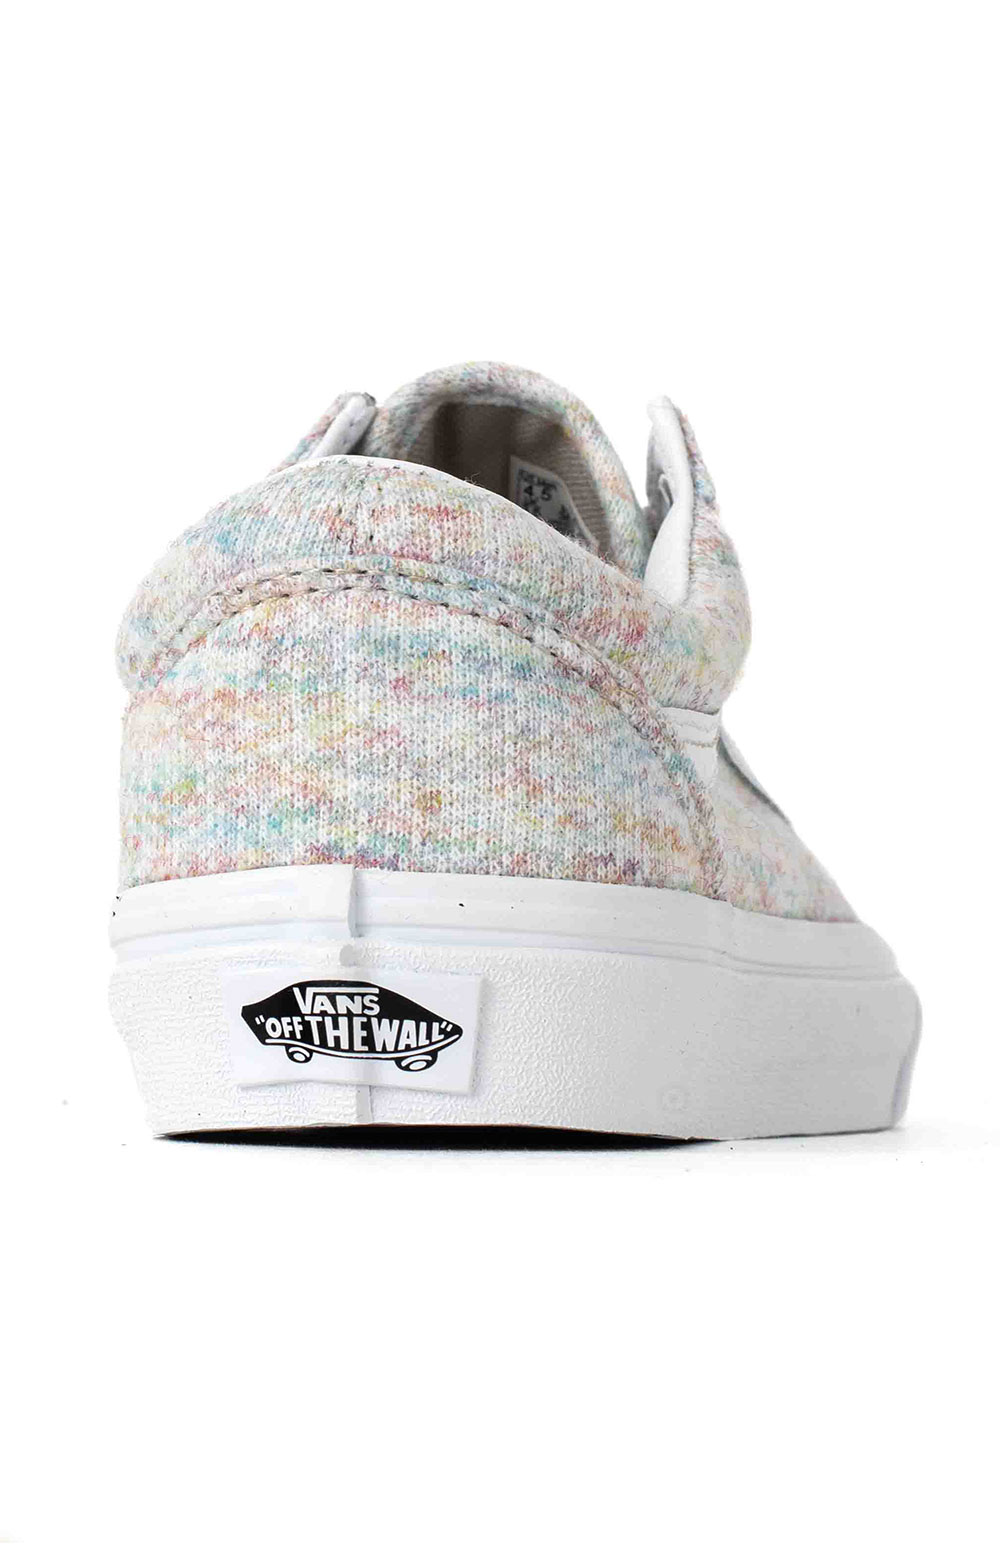 (U3BWN5) Rainbow Jersey Old Skool Shoe - Multi 5